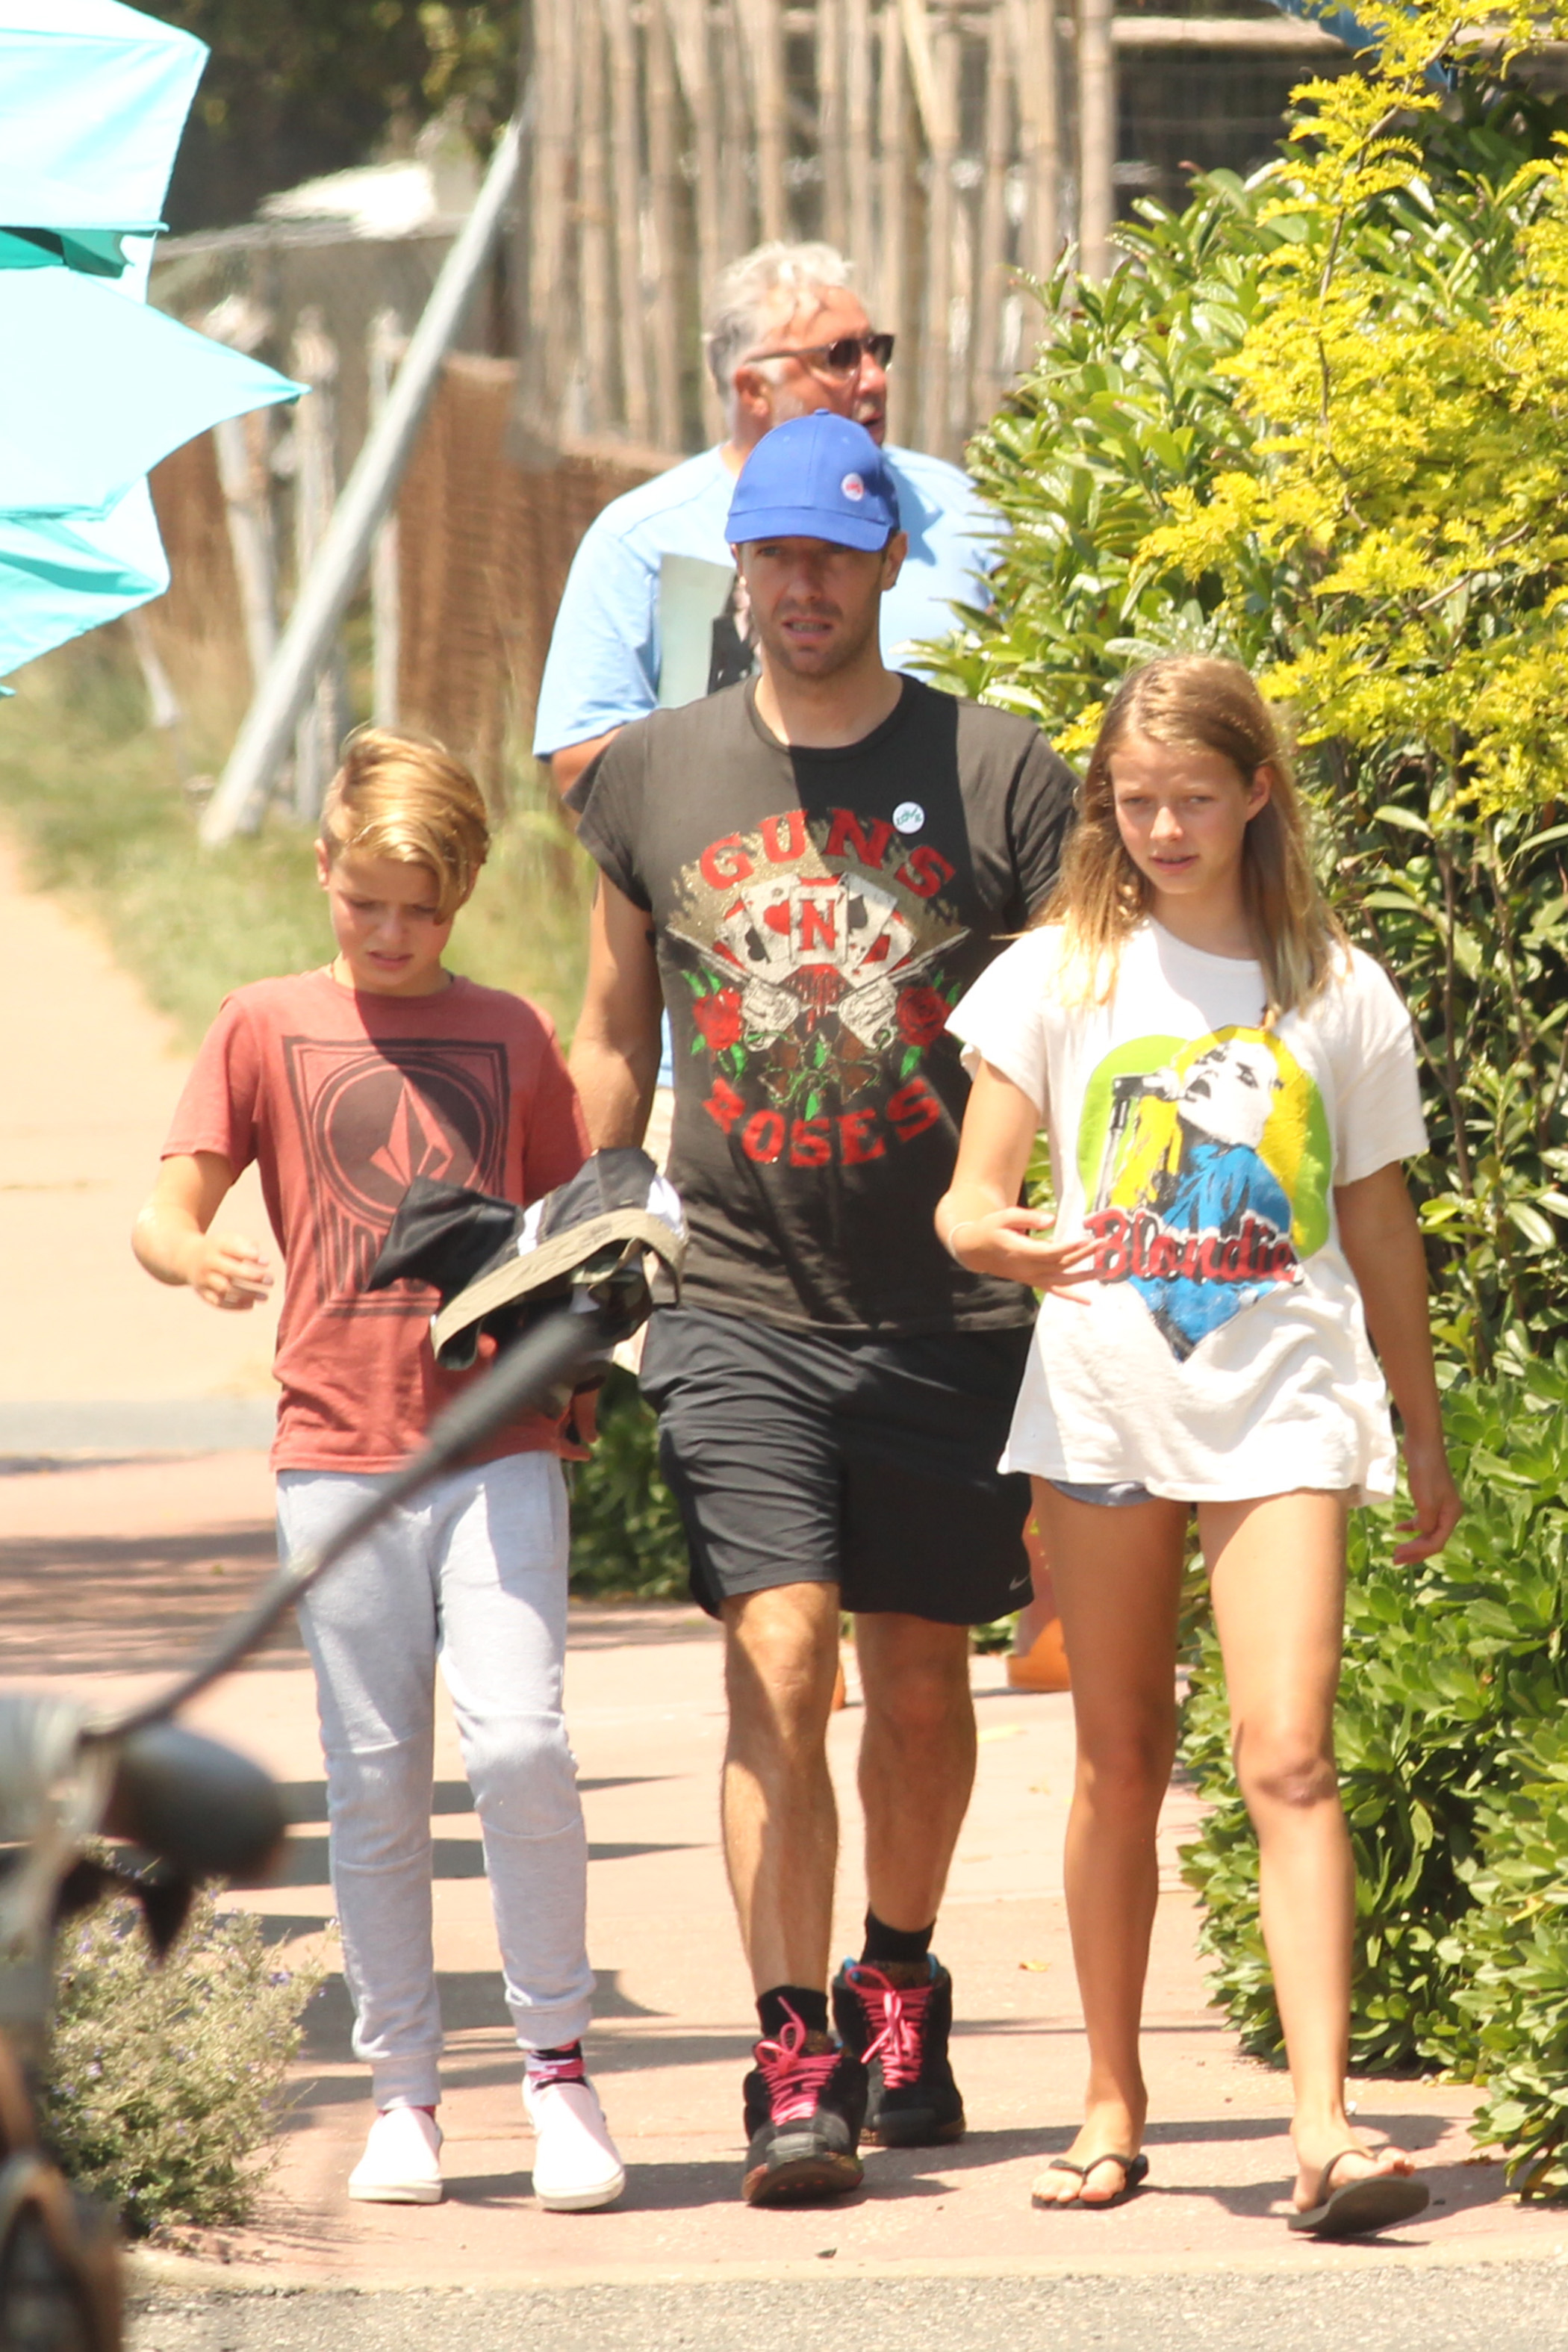 Exclusive, Montauk, NY - 7/20/2017 - Chris Martin seen out with his kids Apple and Moses  -PICTURED: Chris Martin, Apple Martin, Moses Martin -, Image: 342614383, License: Rights-managed, Restrictions: Exclusive, Model Release: no, Credit line: Profimedia, INSTAR Images